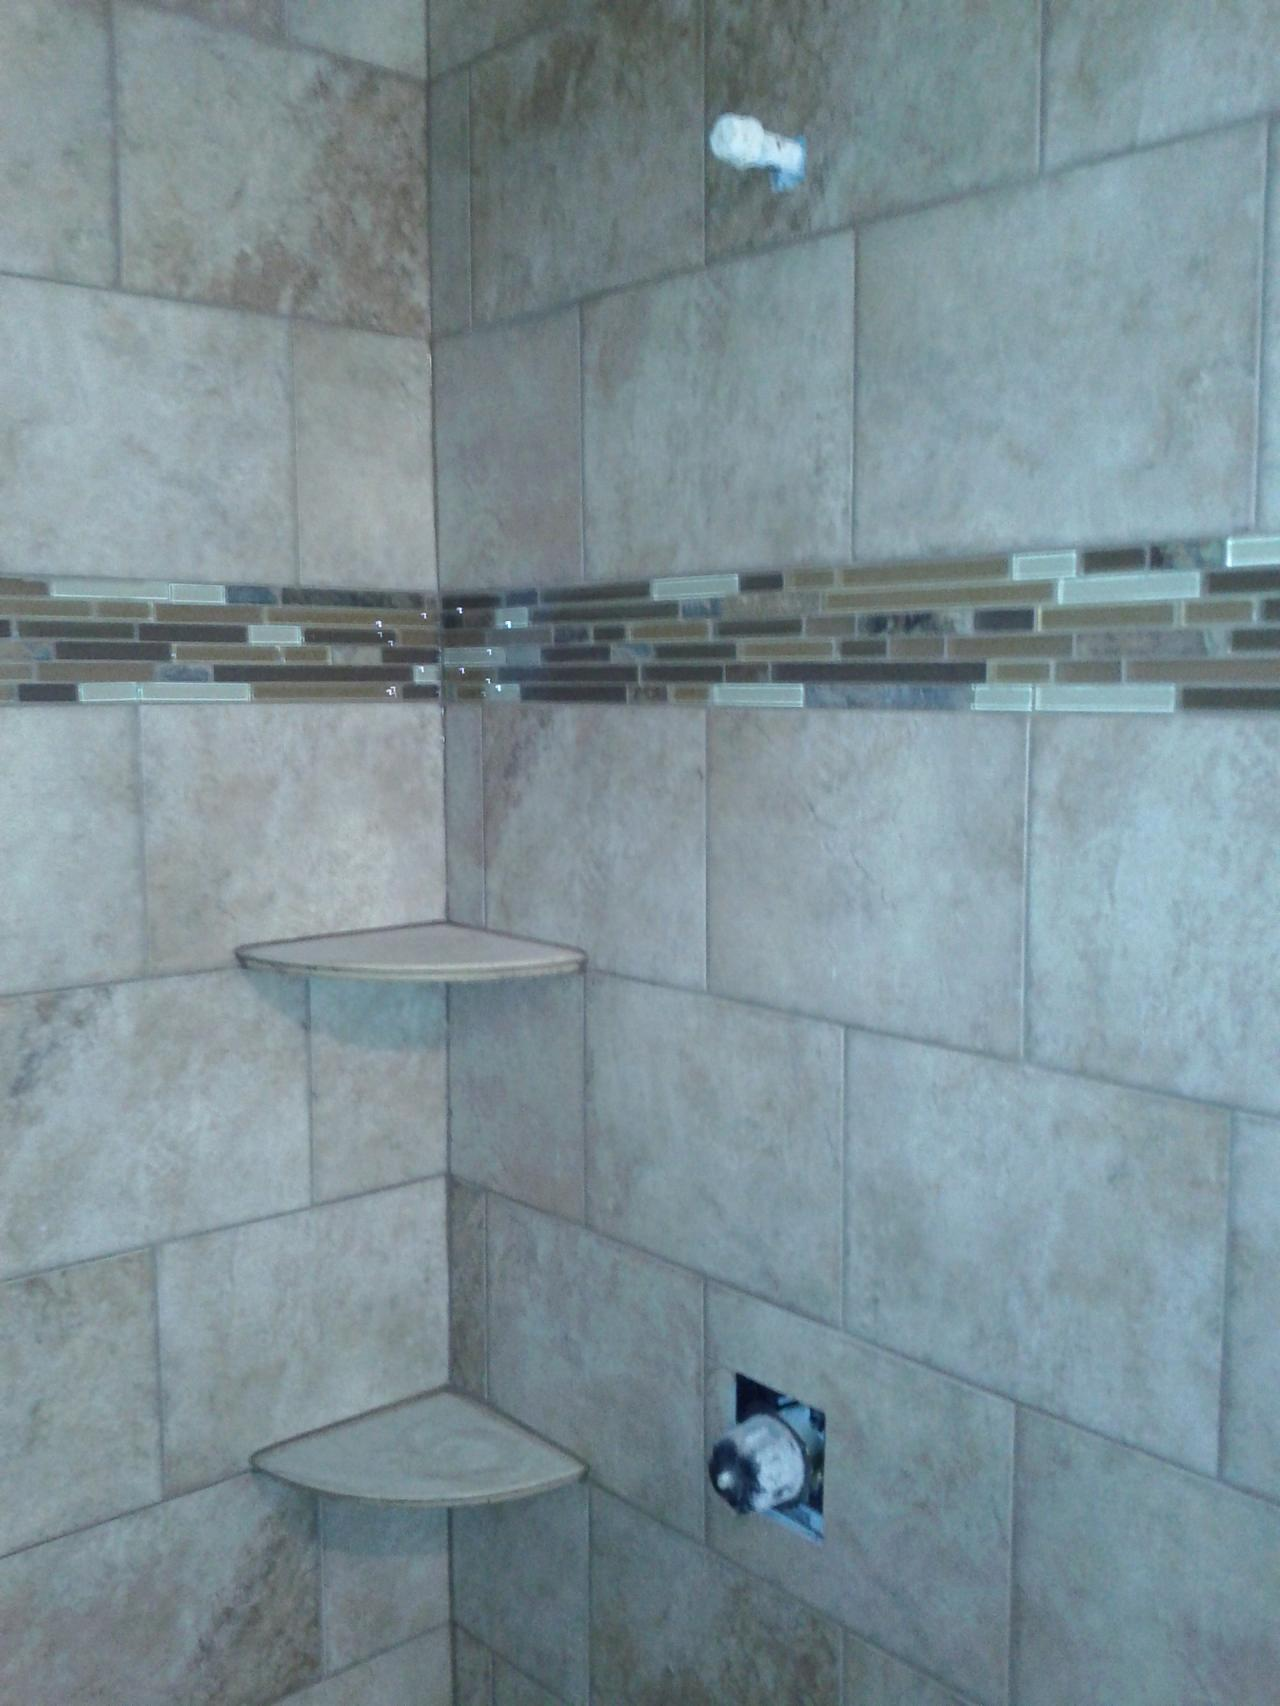 43 magnificent pictures and ideas of modern tile patterns for bathrooms Tile a shower